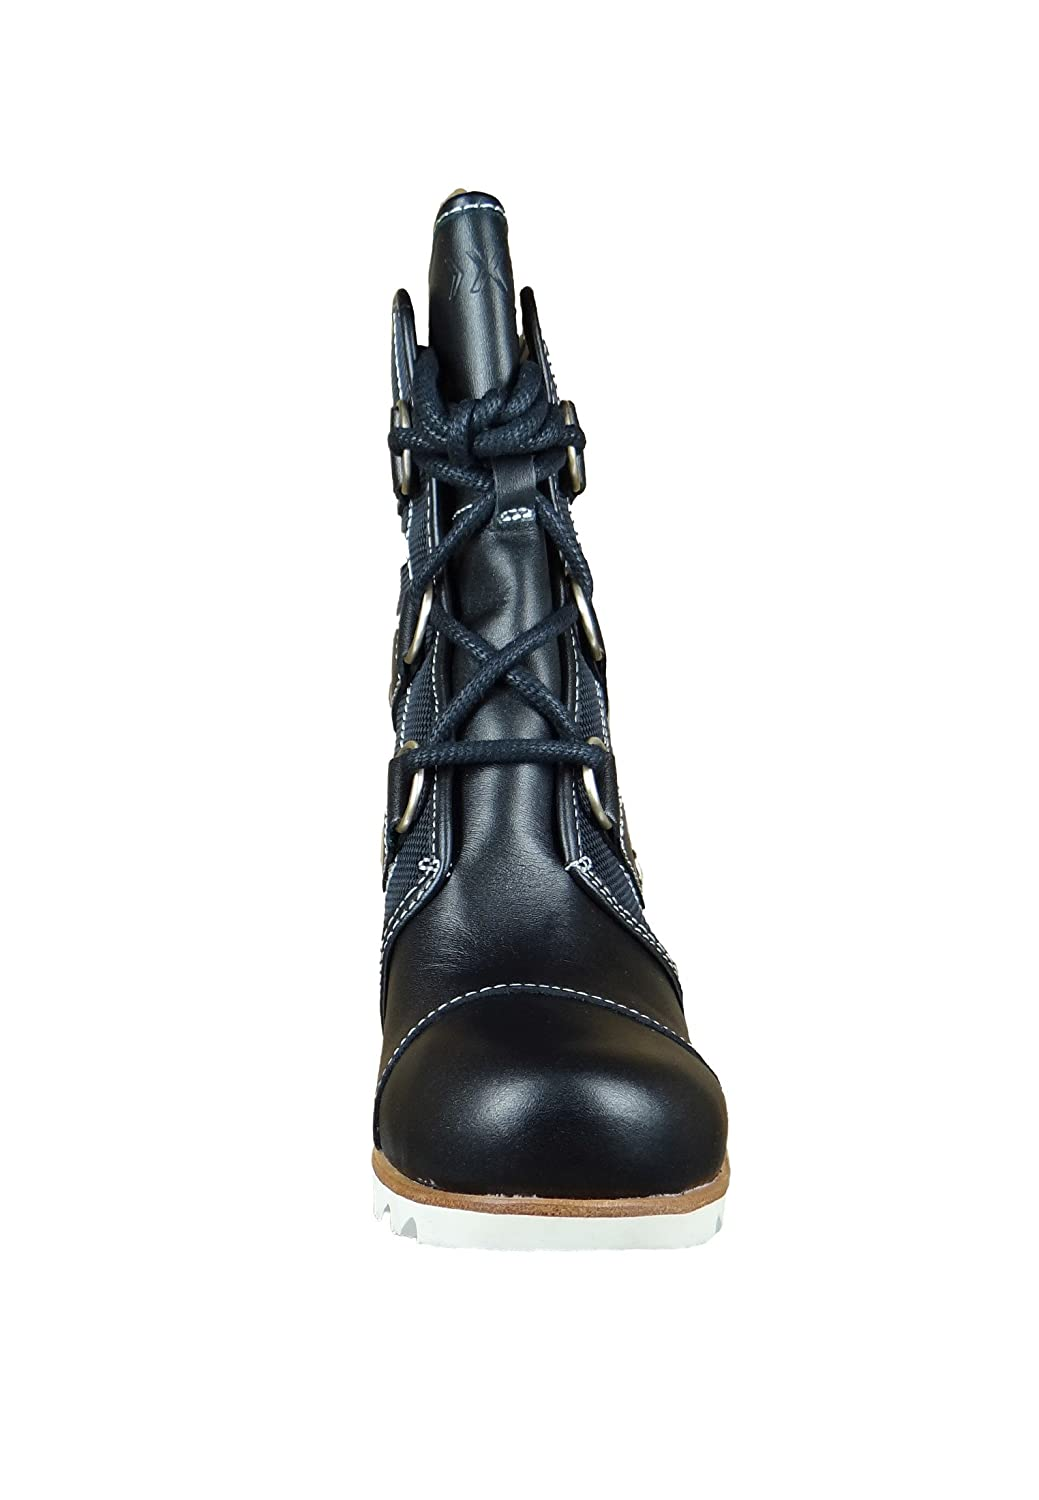 86076f536571 Sorel Women s Joan of Arctic Wedge Mid x Celebration Black Natural 5.5 B  US  Amazon.ca  Shoes   Handbags